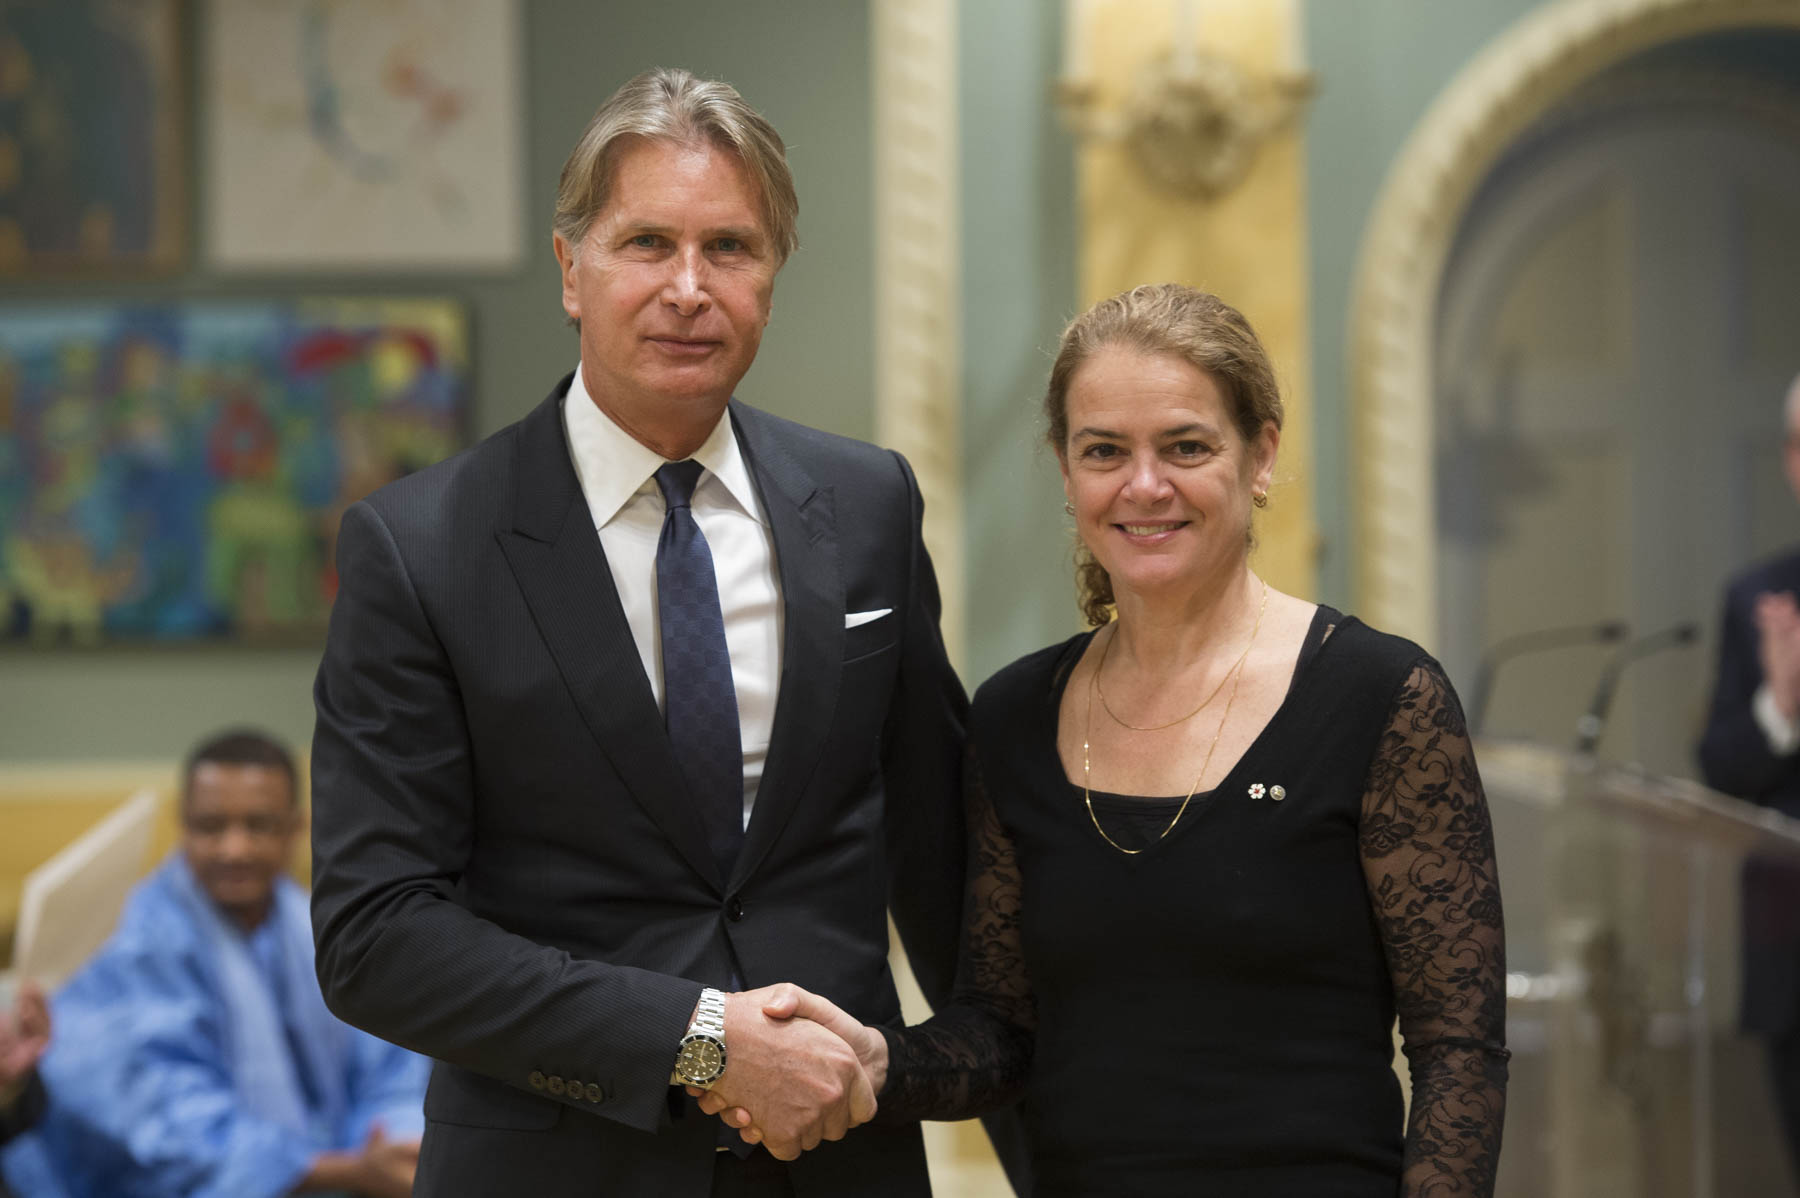 She then accepted the letters of credence of His Excellency Maurizio Carlo Alberto Gelli, Ambassador of the Republic of Nicaragua.